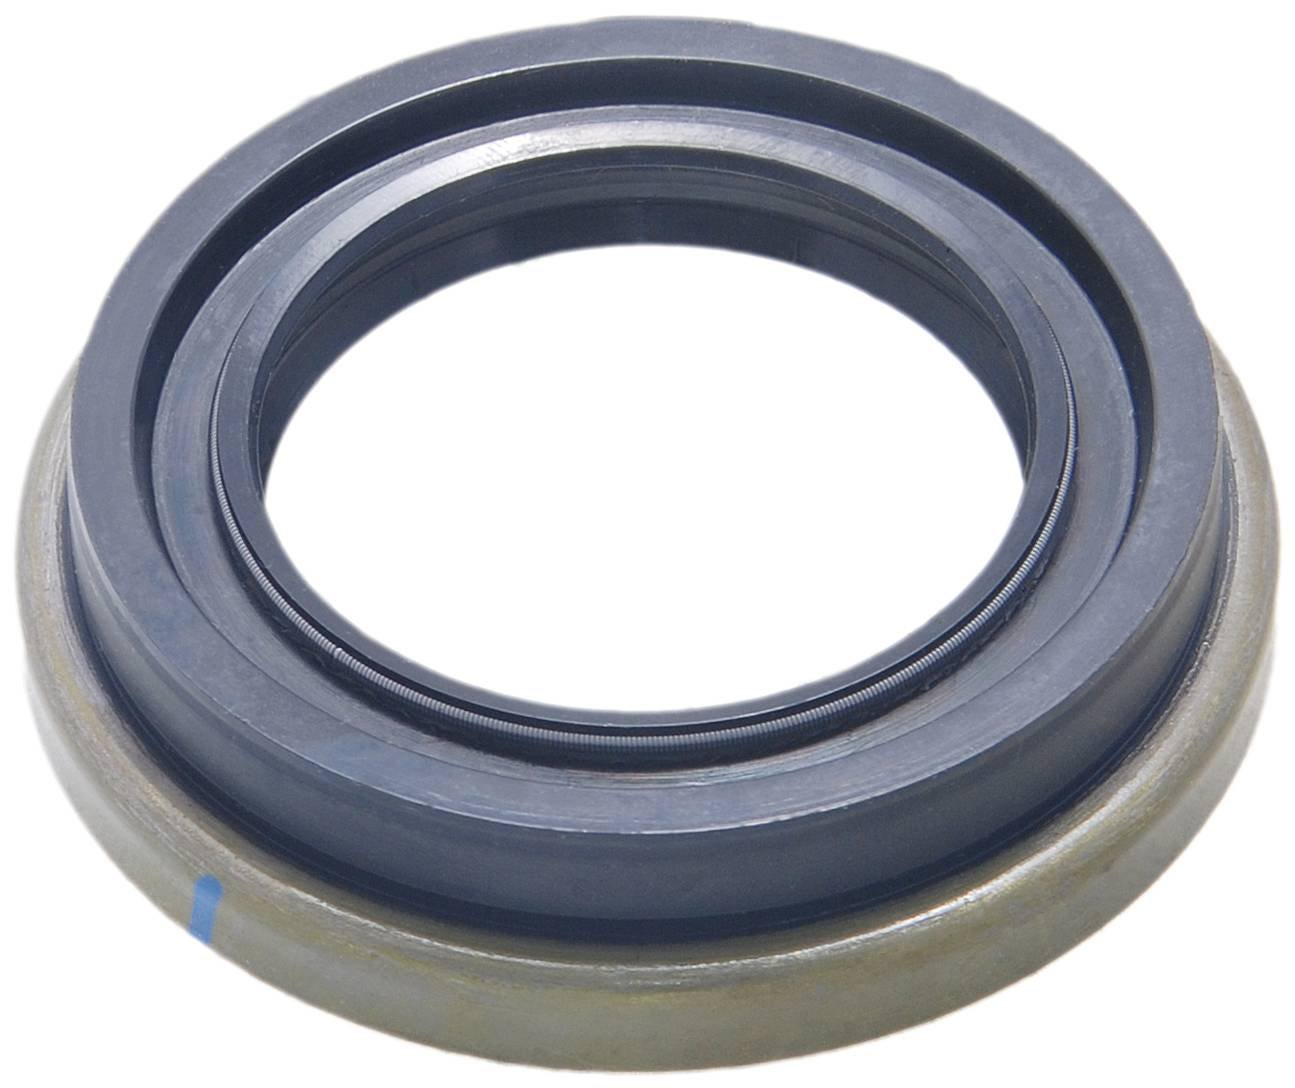 Amazon.com: 09289-48004 / 928948004 - Oil Seal For Front Hub (49X70X8,6X16,6) For Suzuki: Automotive